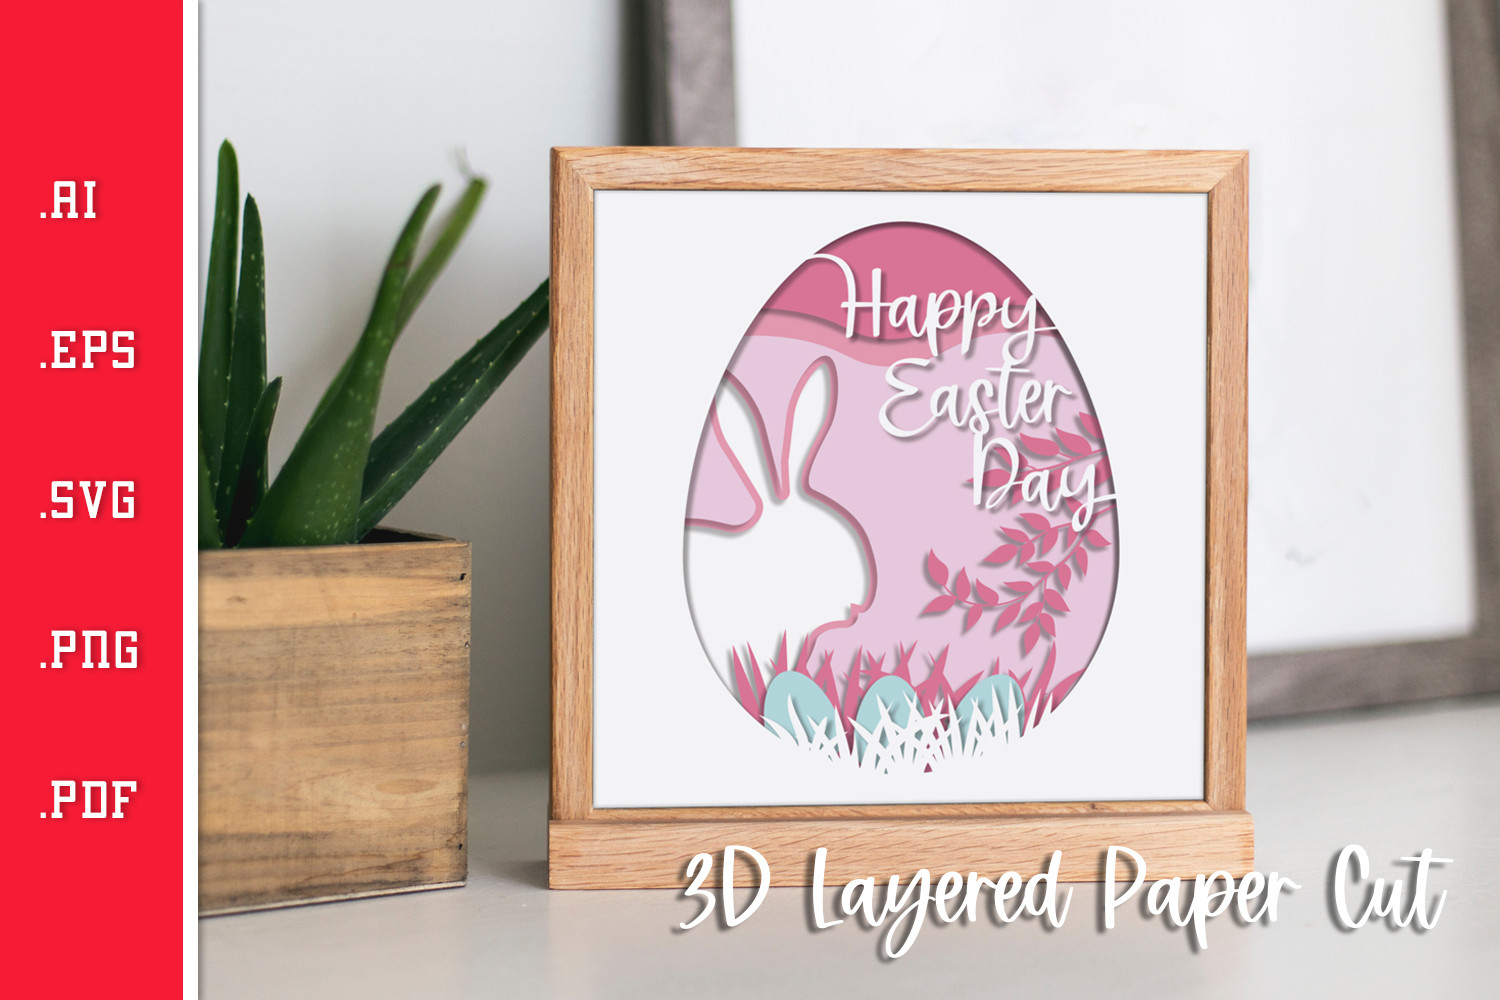 Happy Easter 3D Layered Paper Cut -... SVG File